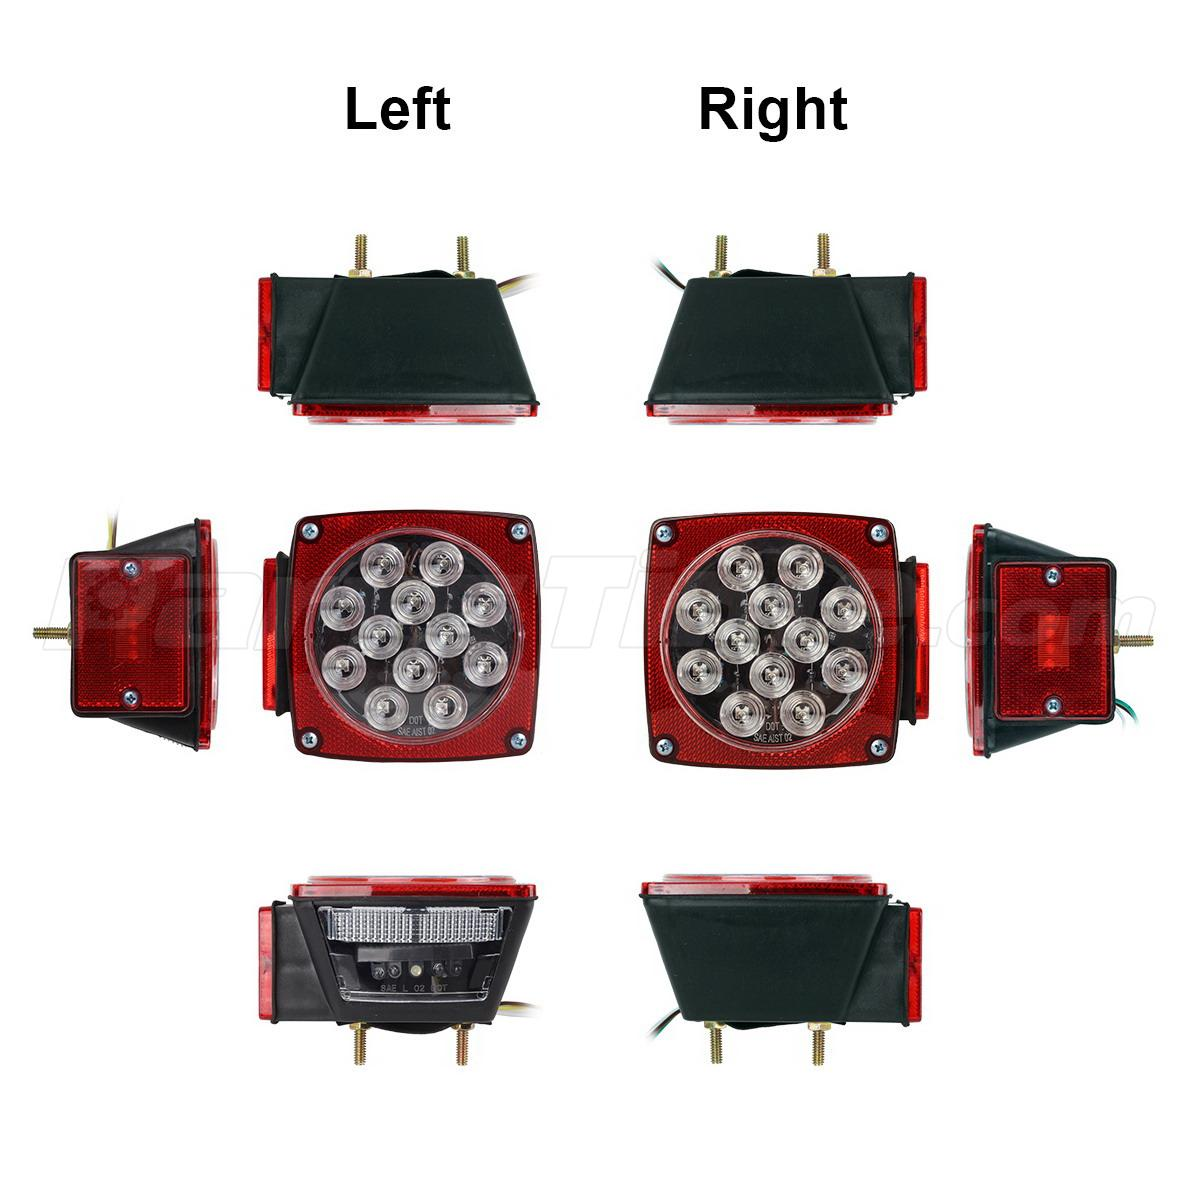 Lovely Utility Trailer Lights Not Working Images - The Best ...